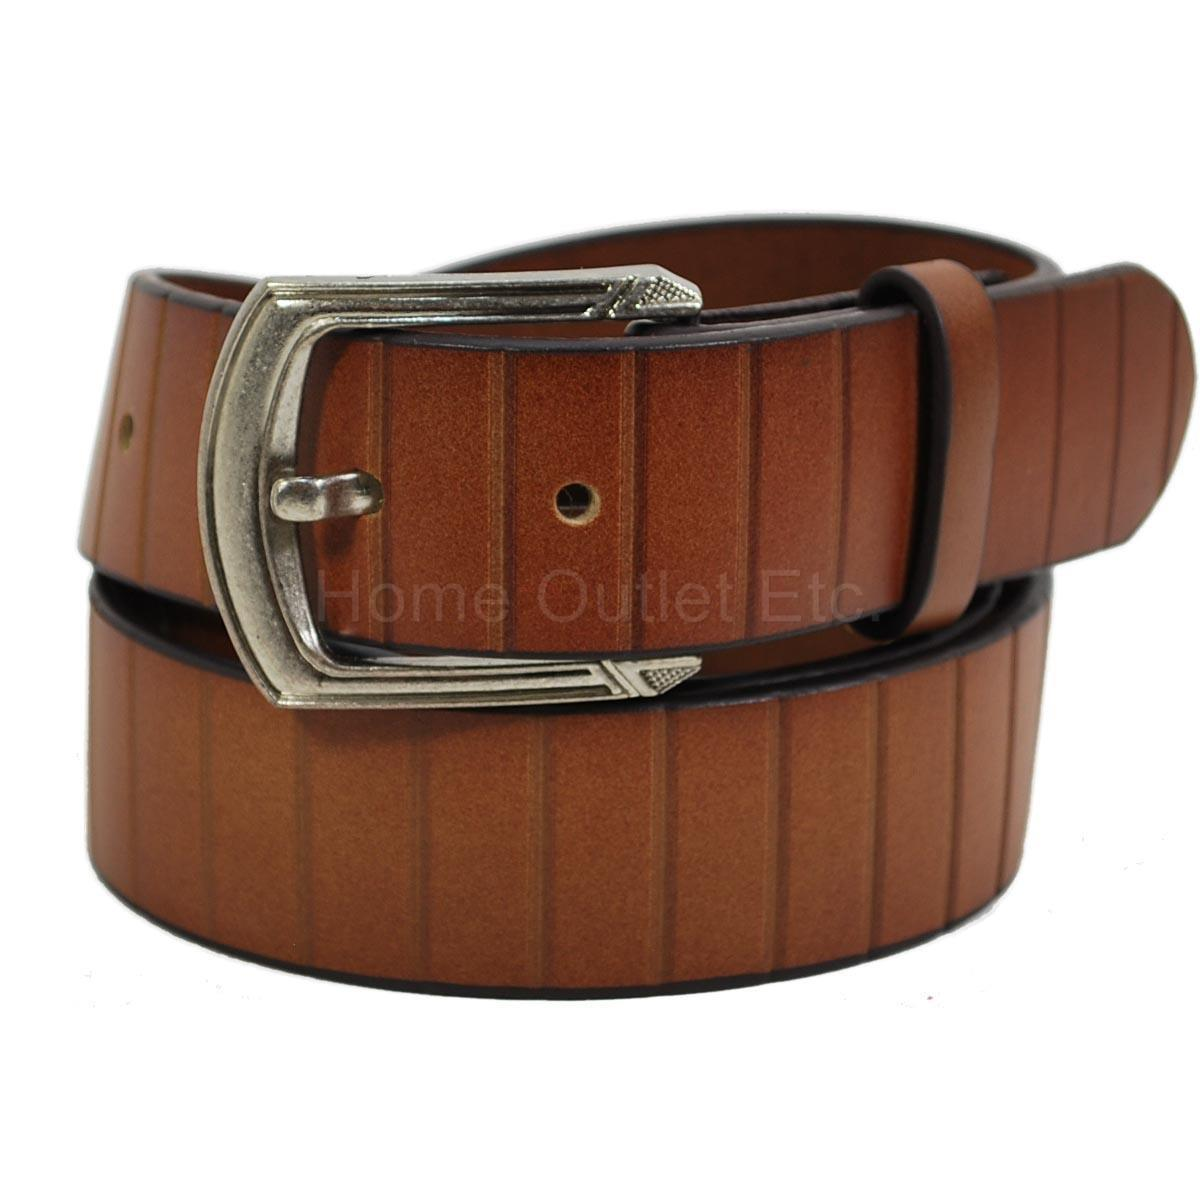 100 solid cowhide leather belt snap on removable buckle